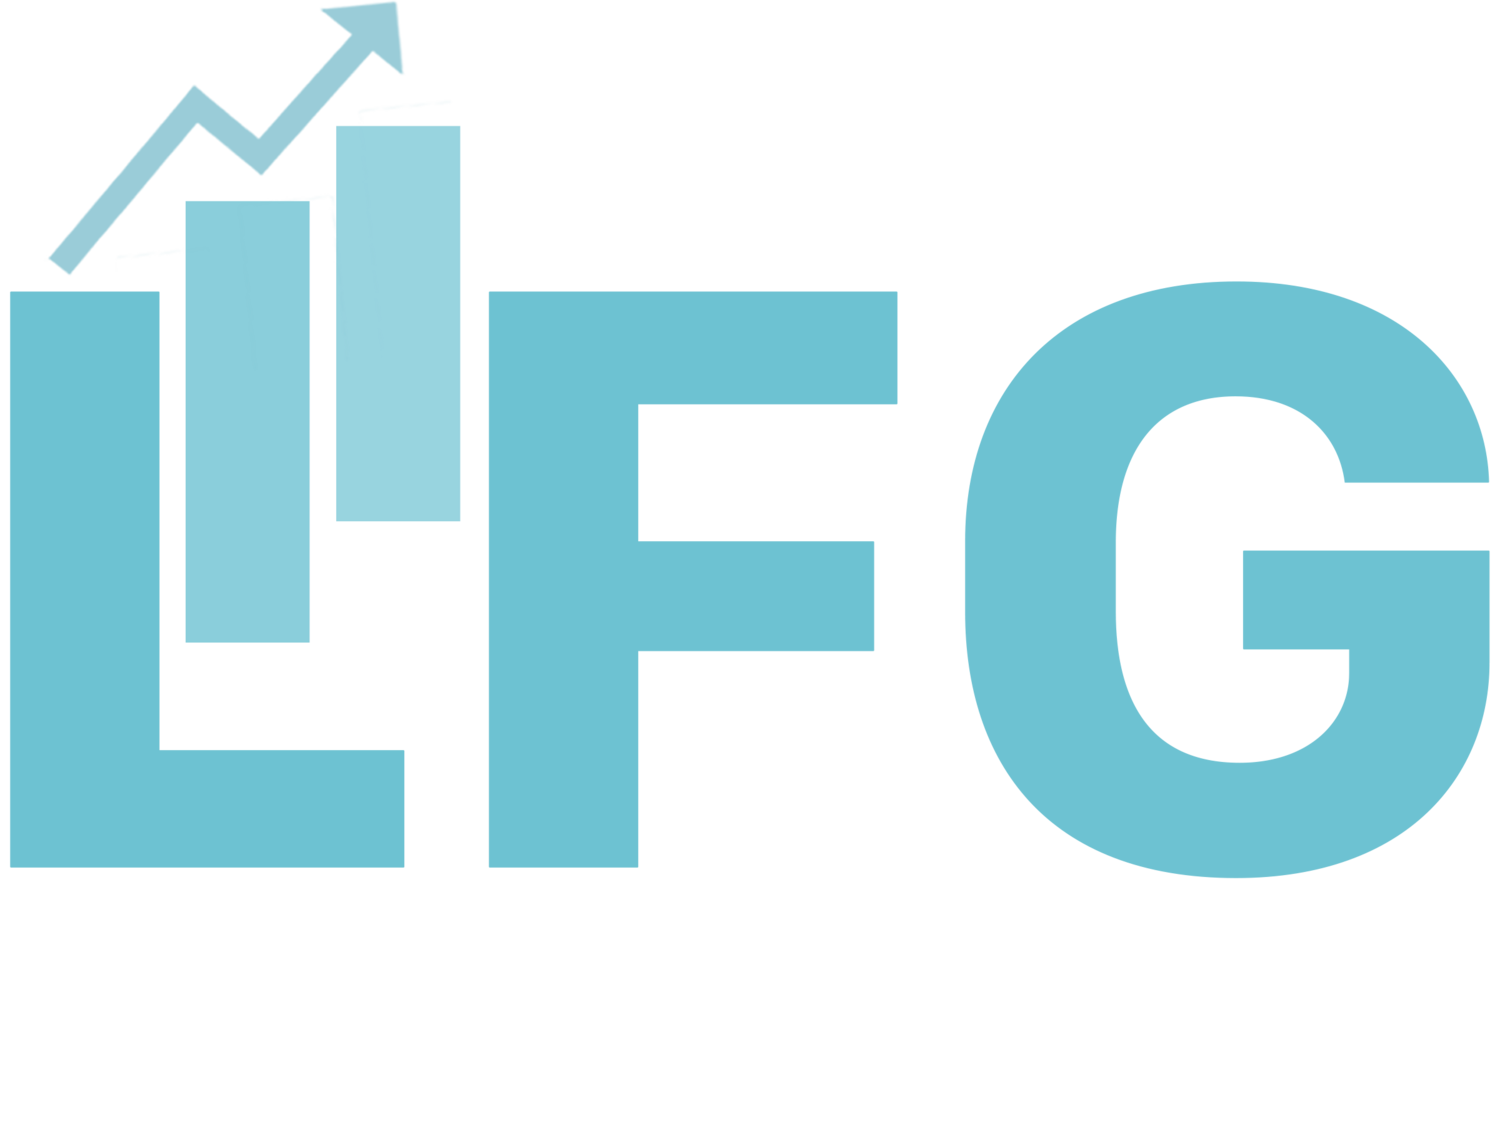 Lehigh FinTech Group